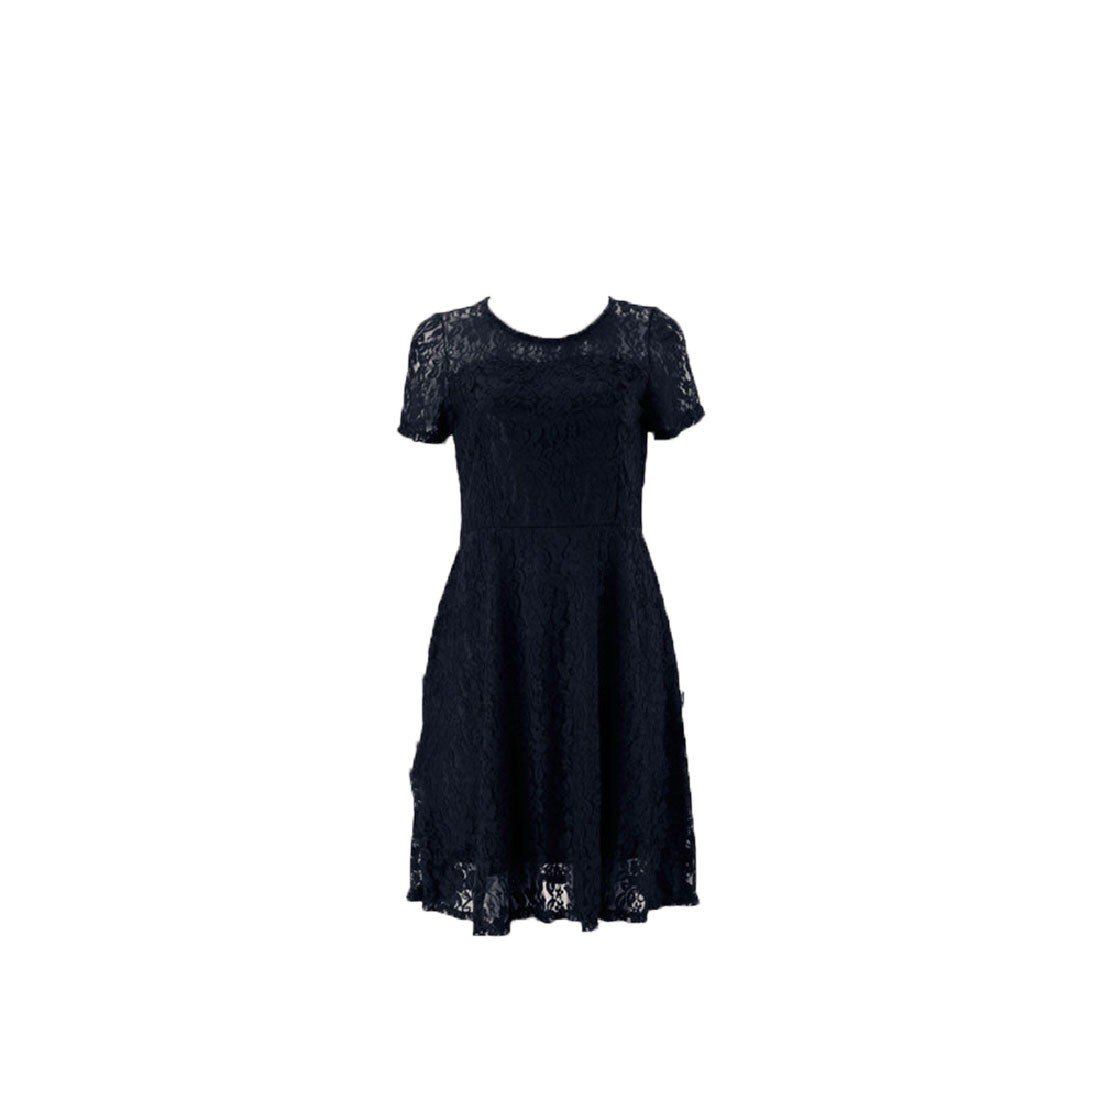 Coolred-Women Short Sleeve Solid Hollow Out Round Neck Lace Shift Dress